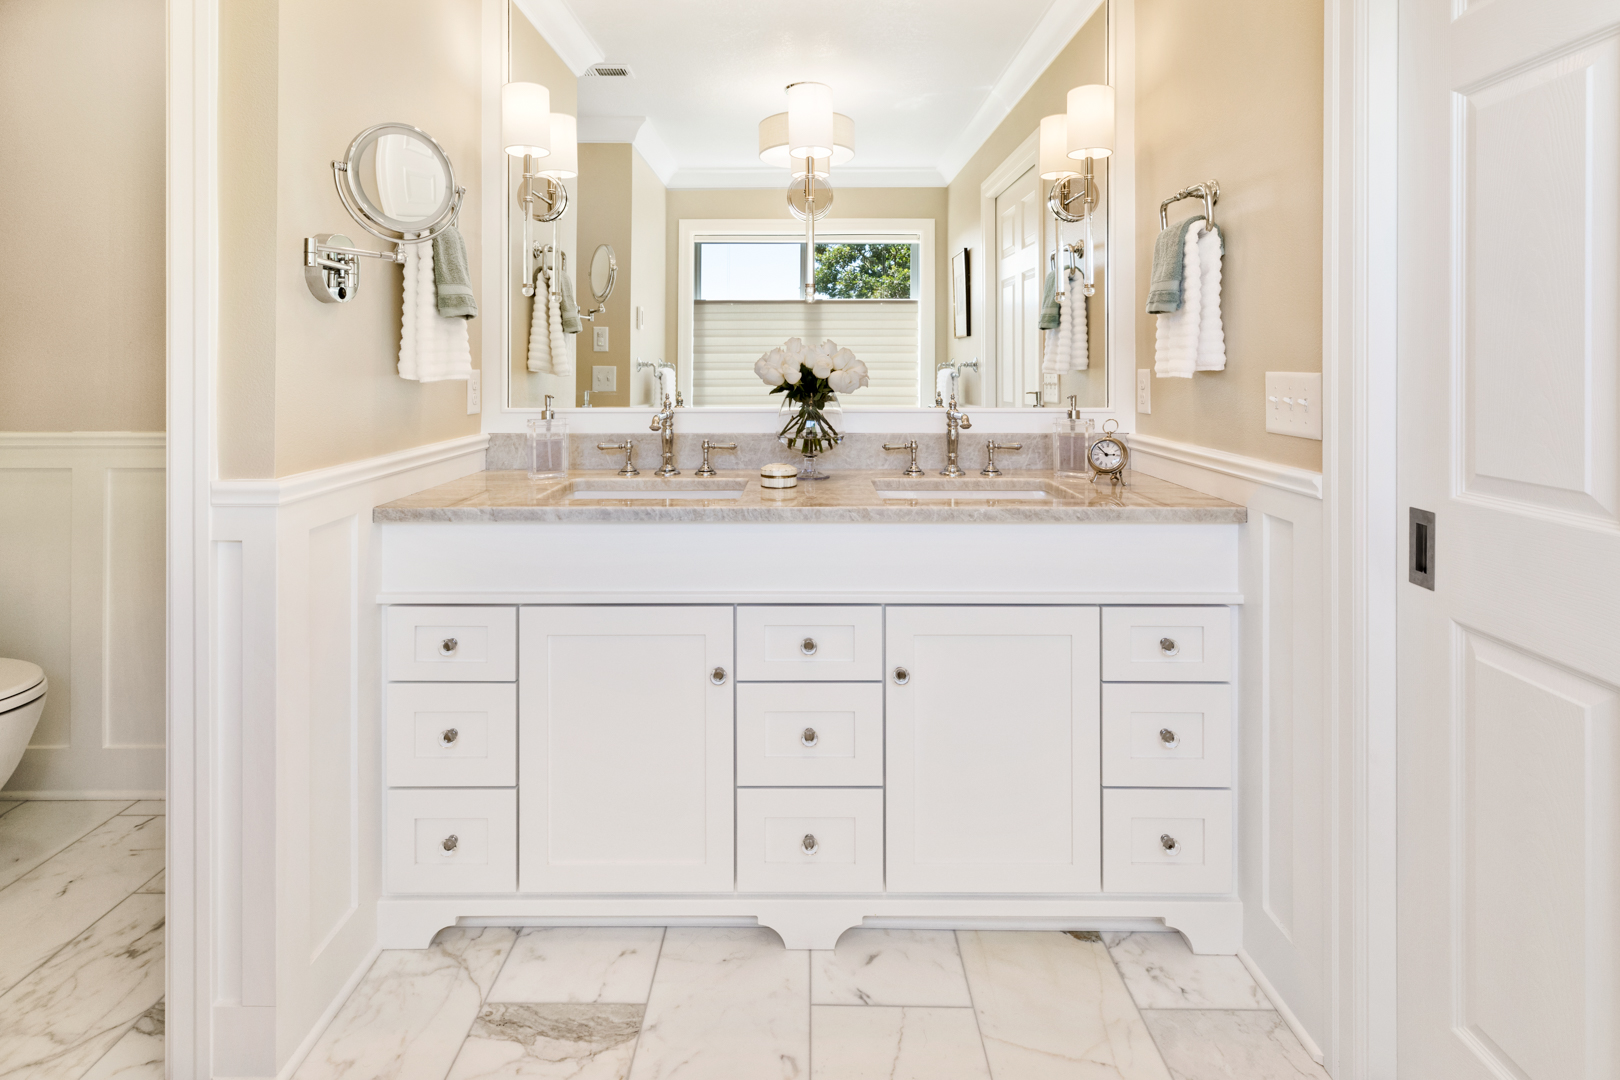 Luxurious Master Bathroom Remodel